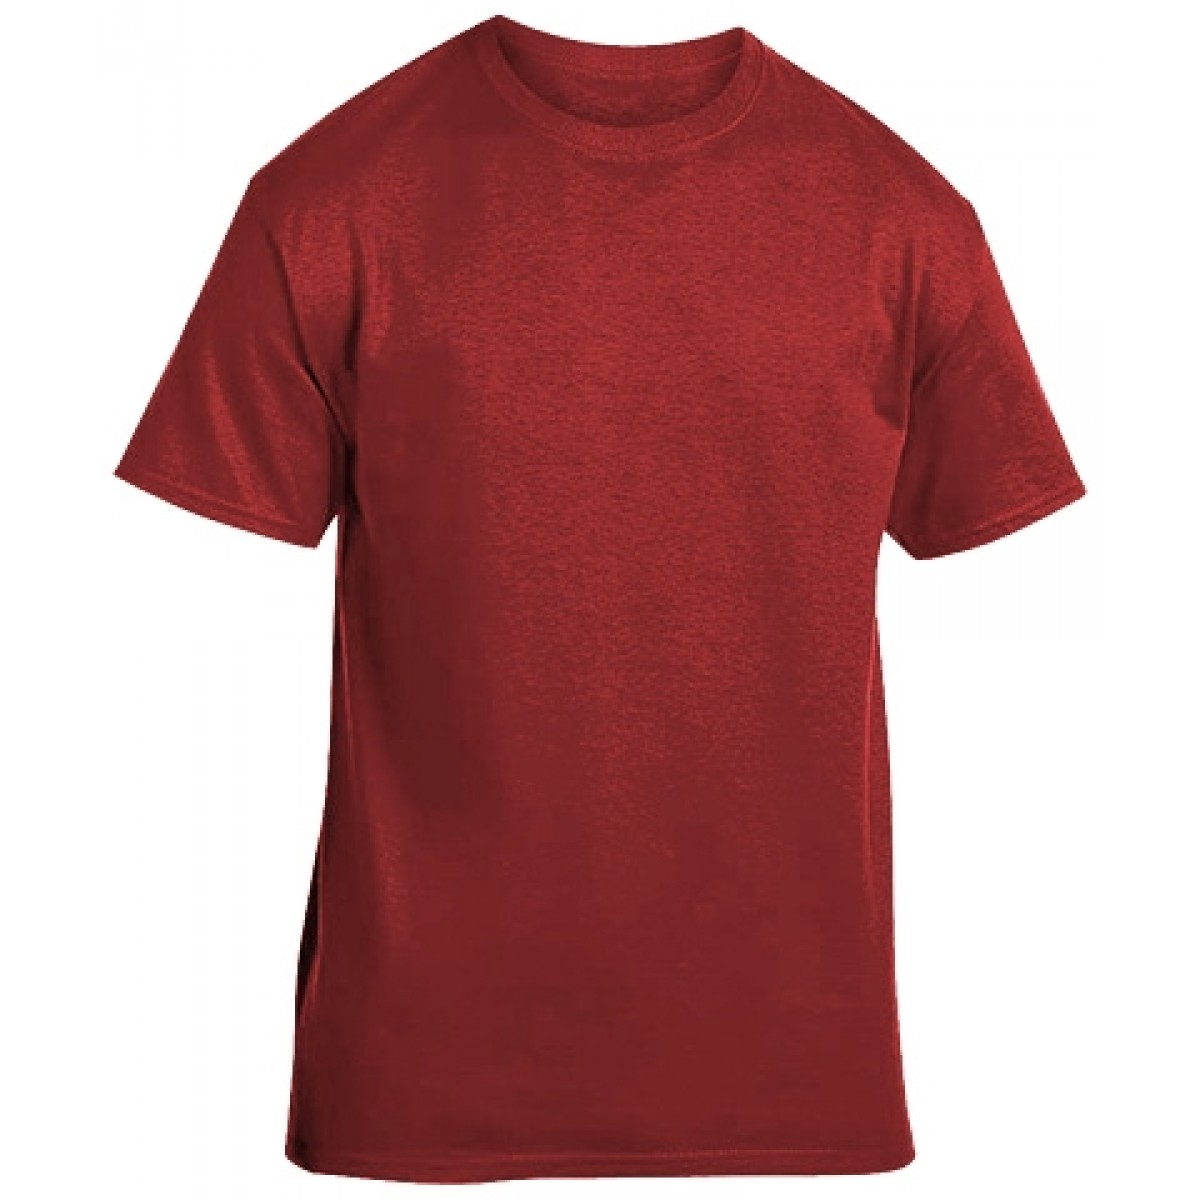 Soft 100% Cotton T-Shirt-Heathered Red-XL